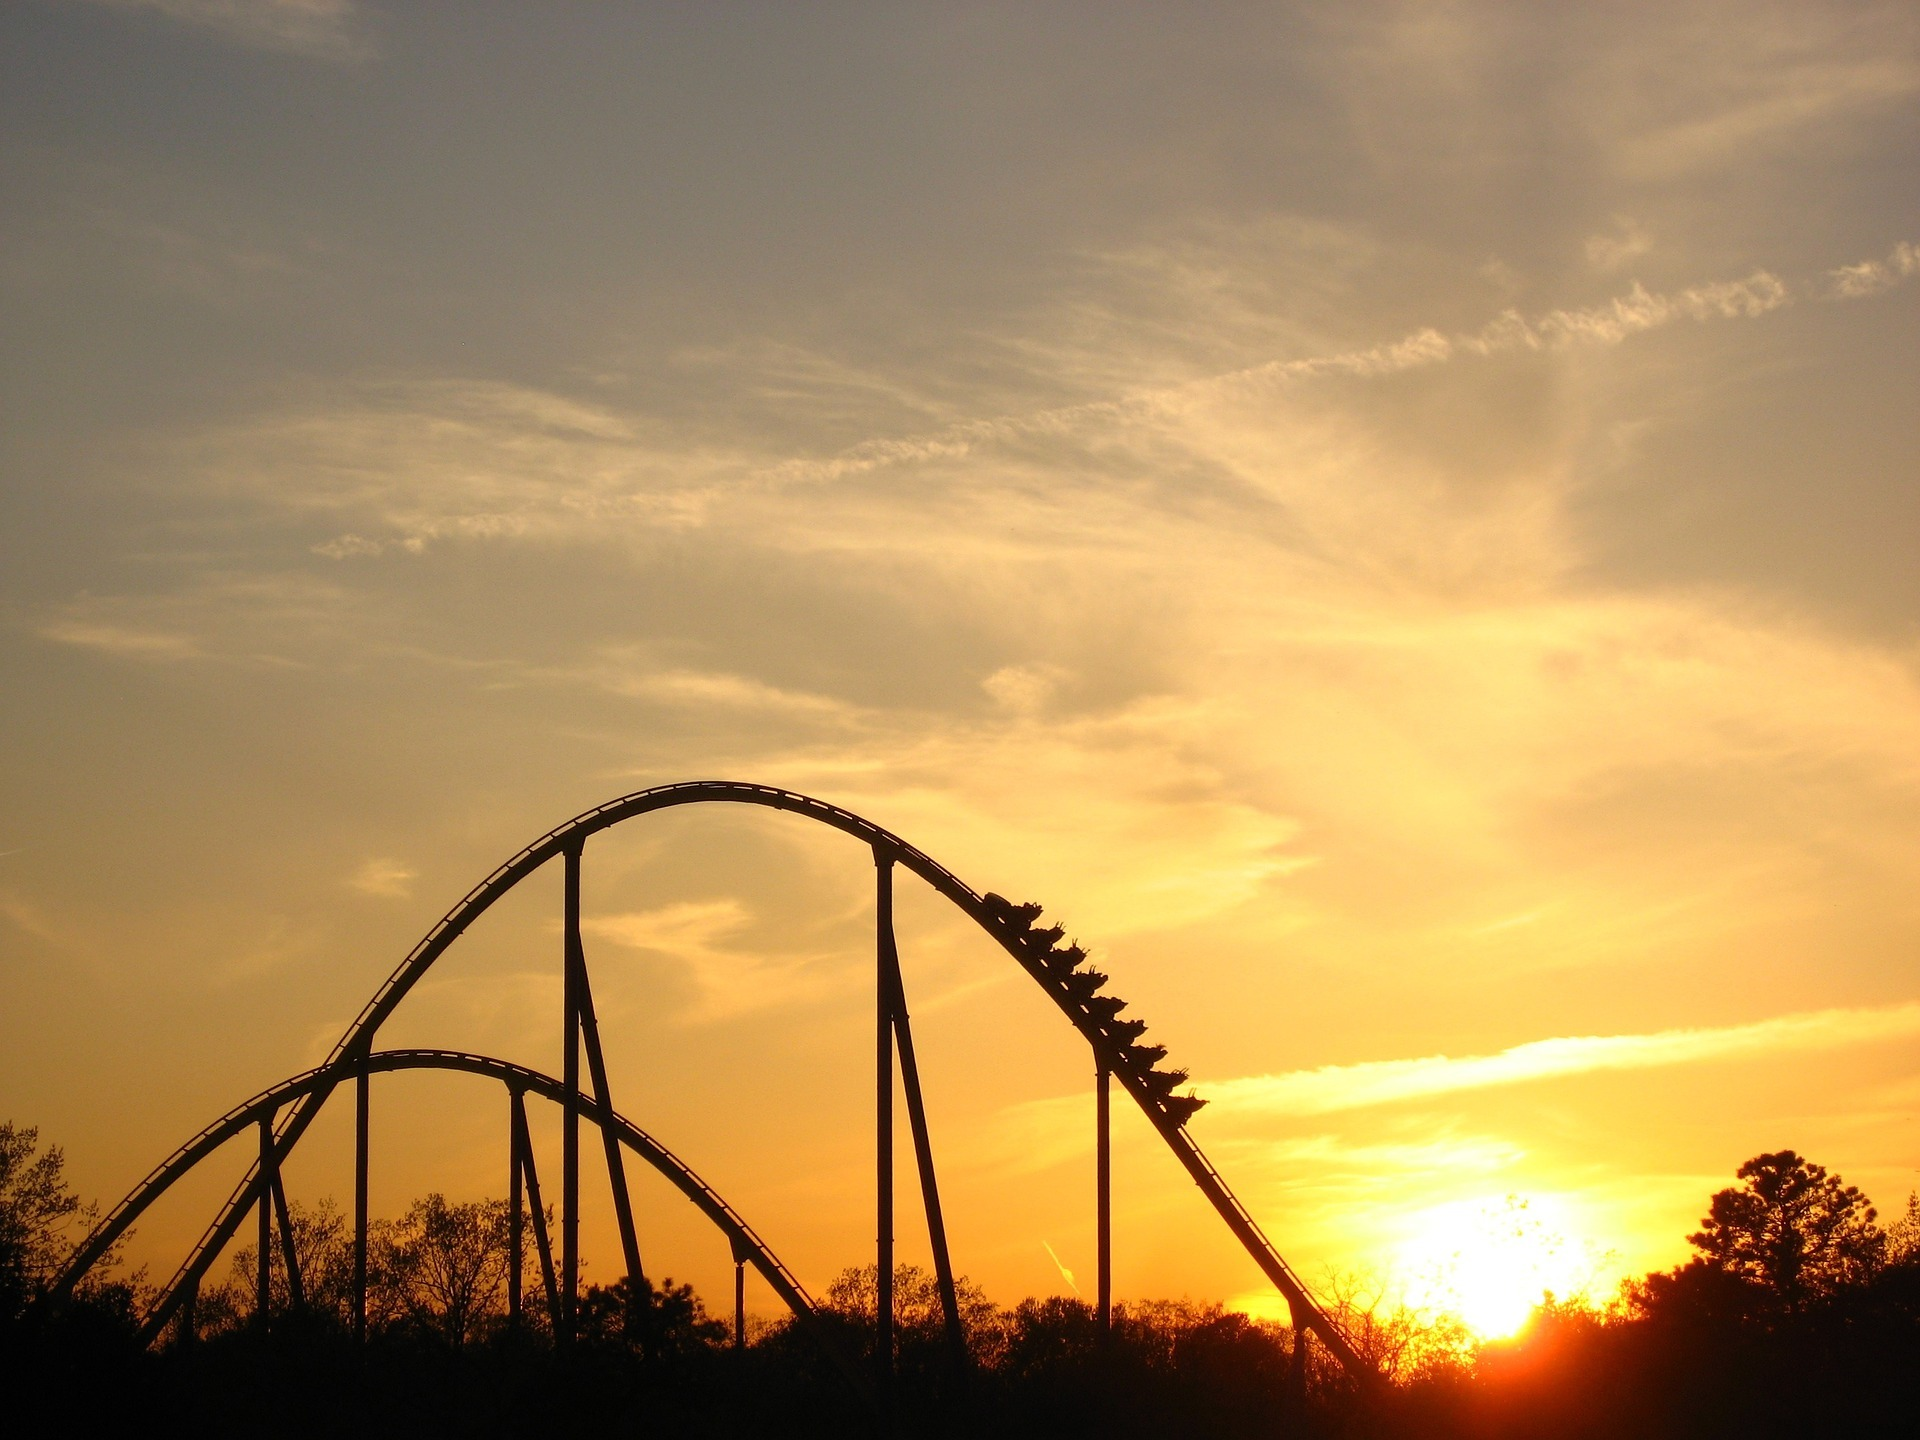 Sunset with a silhouette of a rollercoaster.